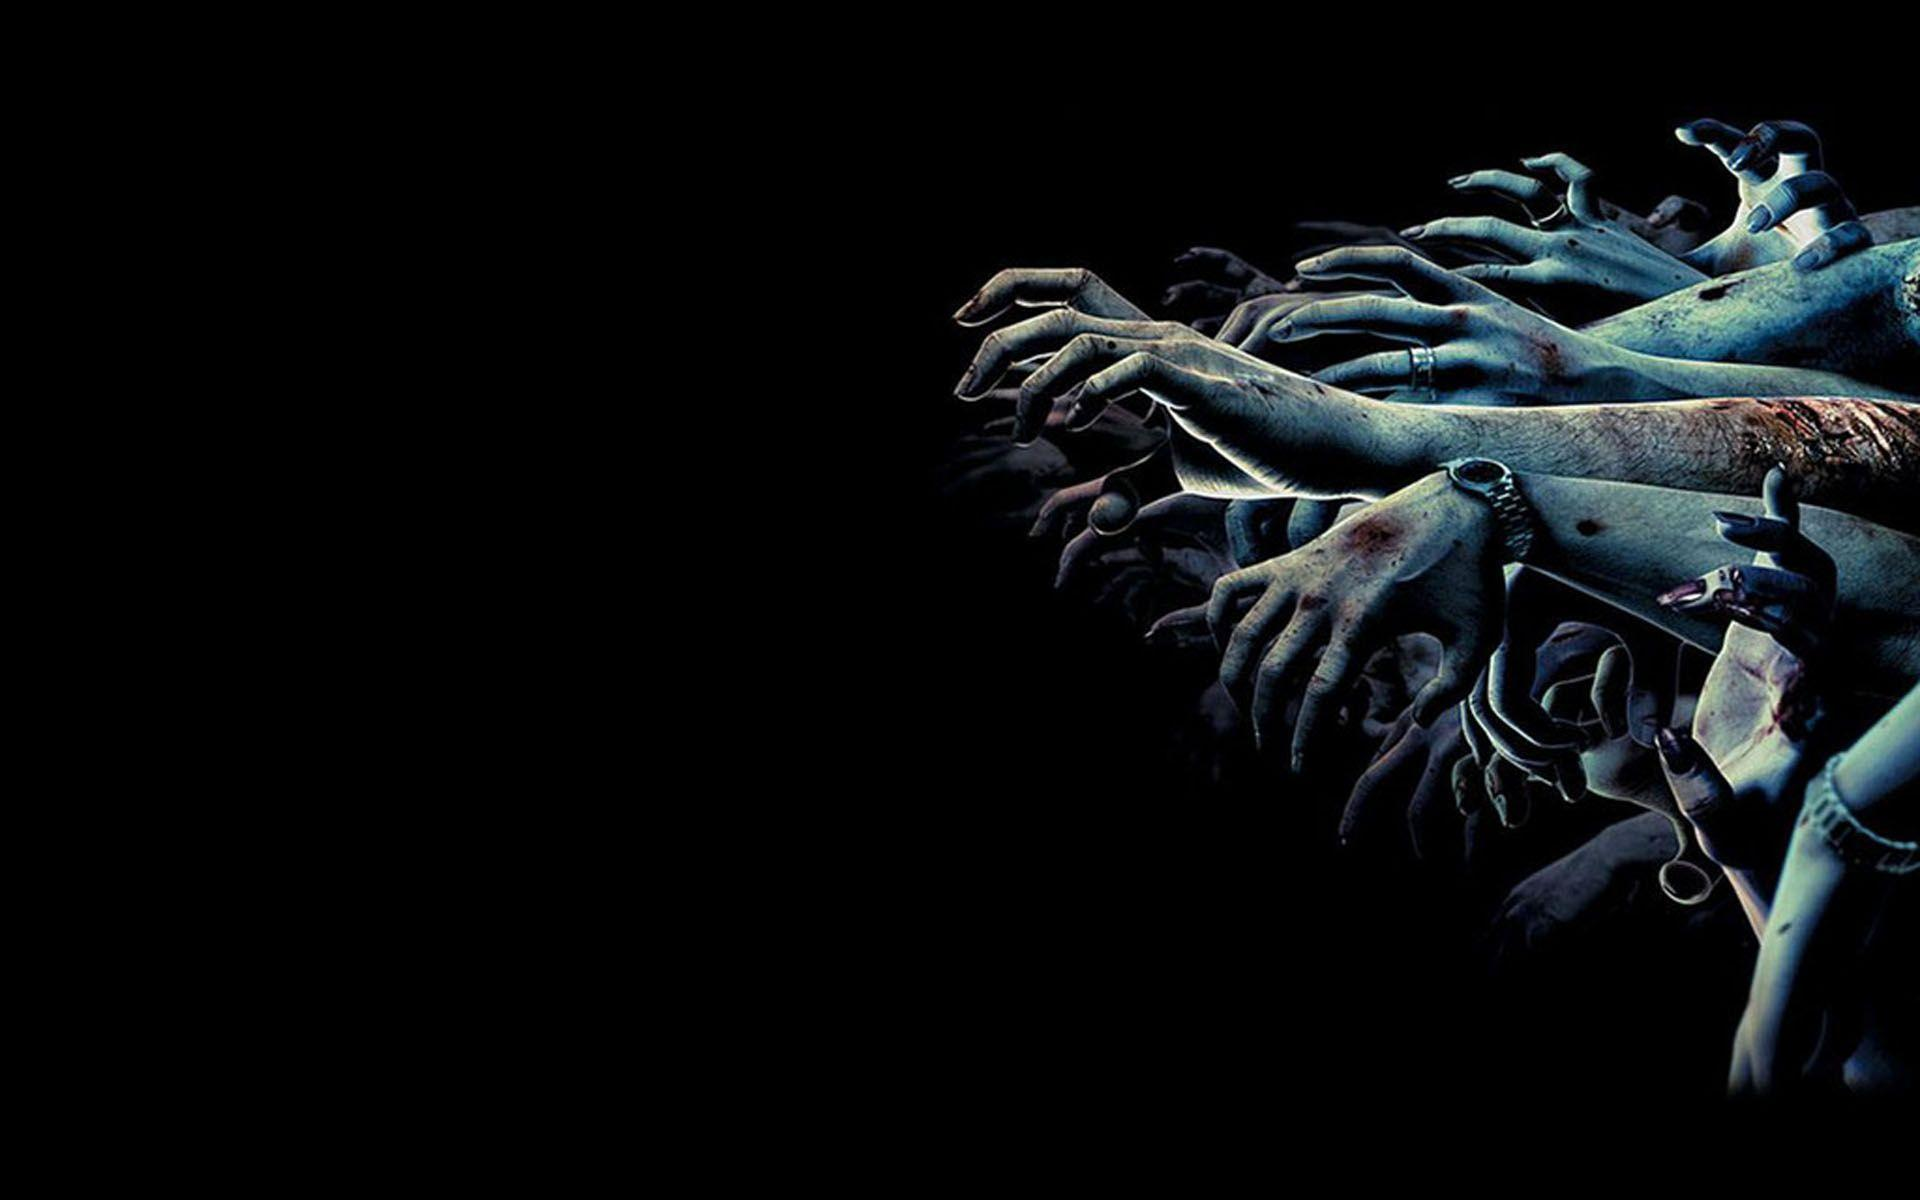 Zombie Wallpapers HD - Wallpaper Cave